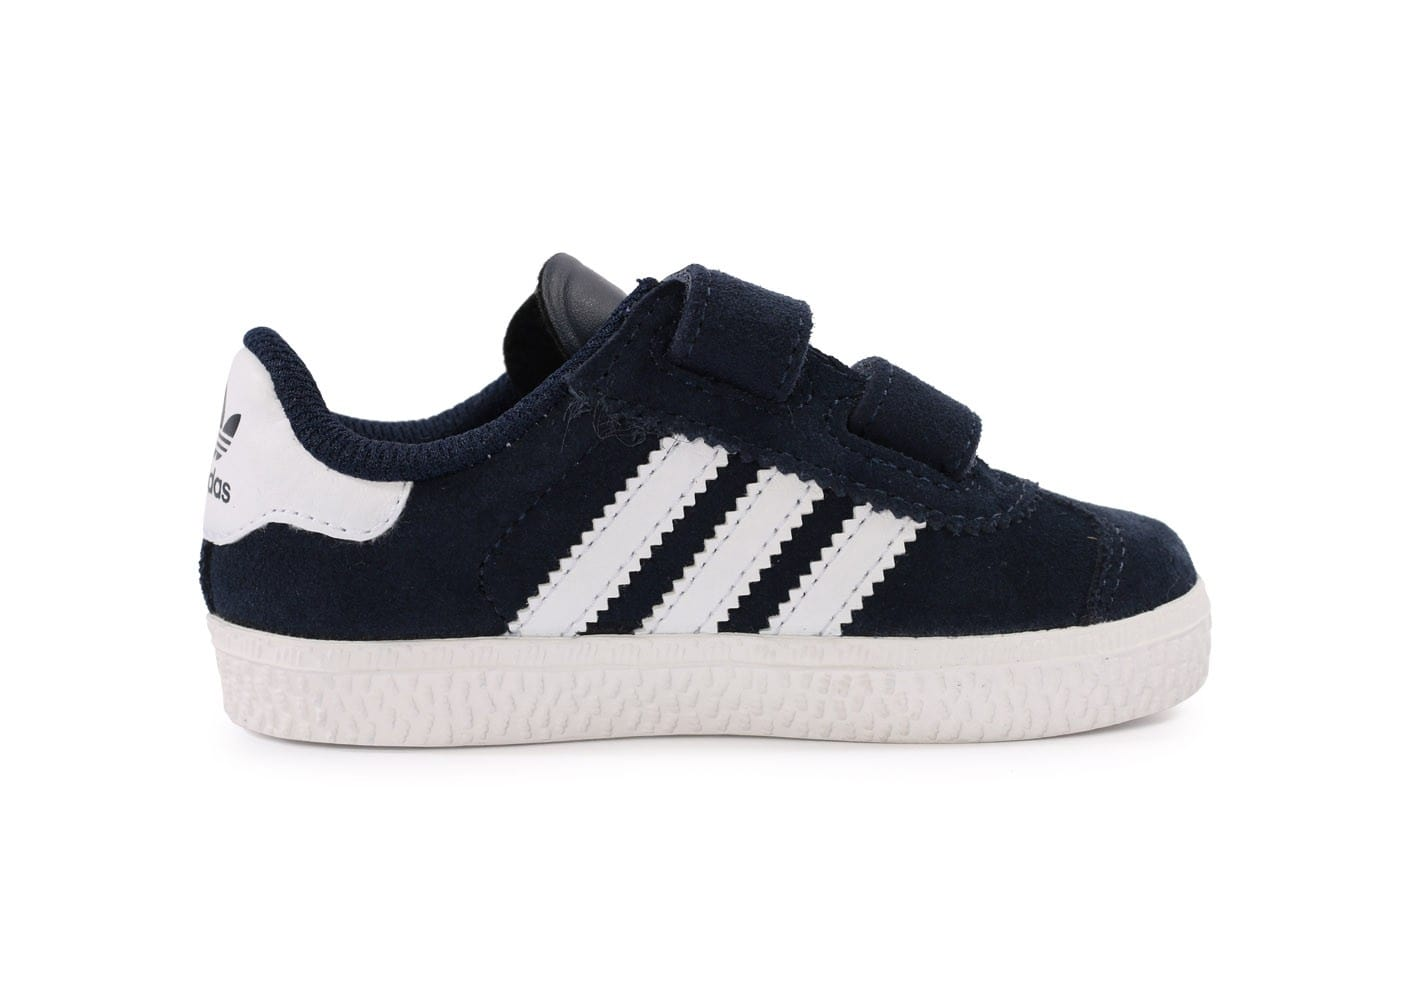 adidas gazelle 2 cf bleu marine b b chaussures adidas chausport. Black Bedroom Furniture Sets. Home Design Ideas